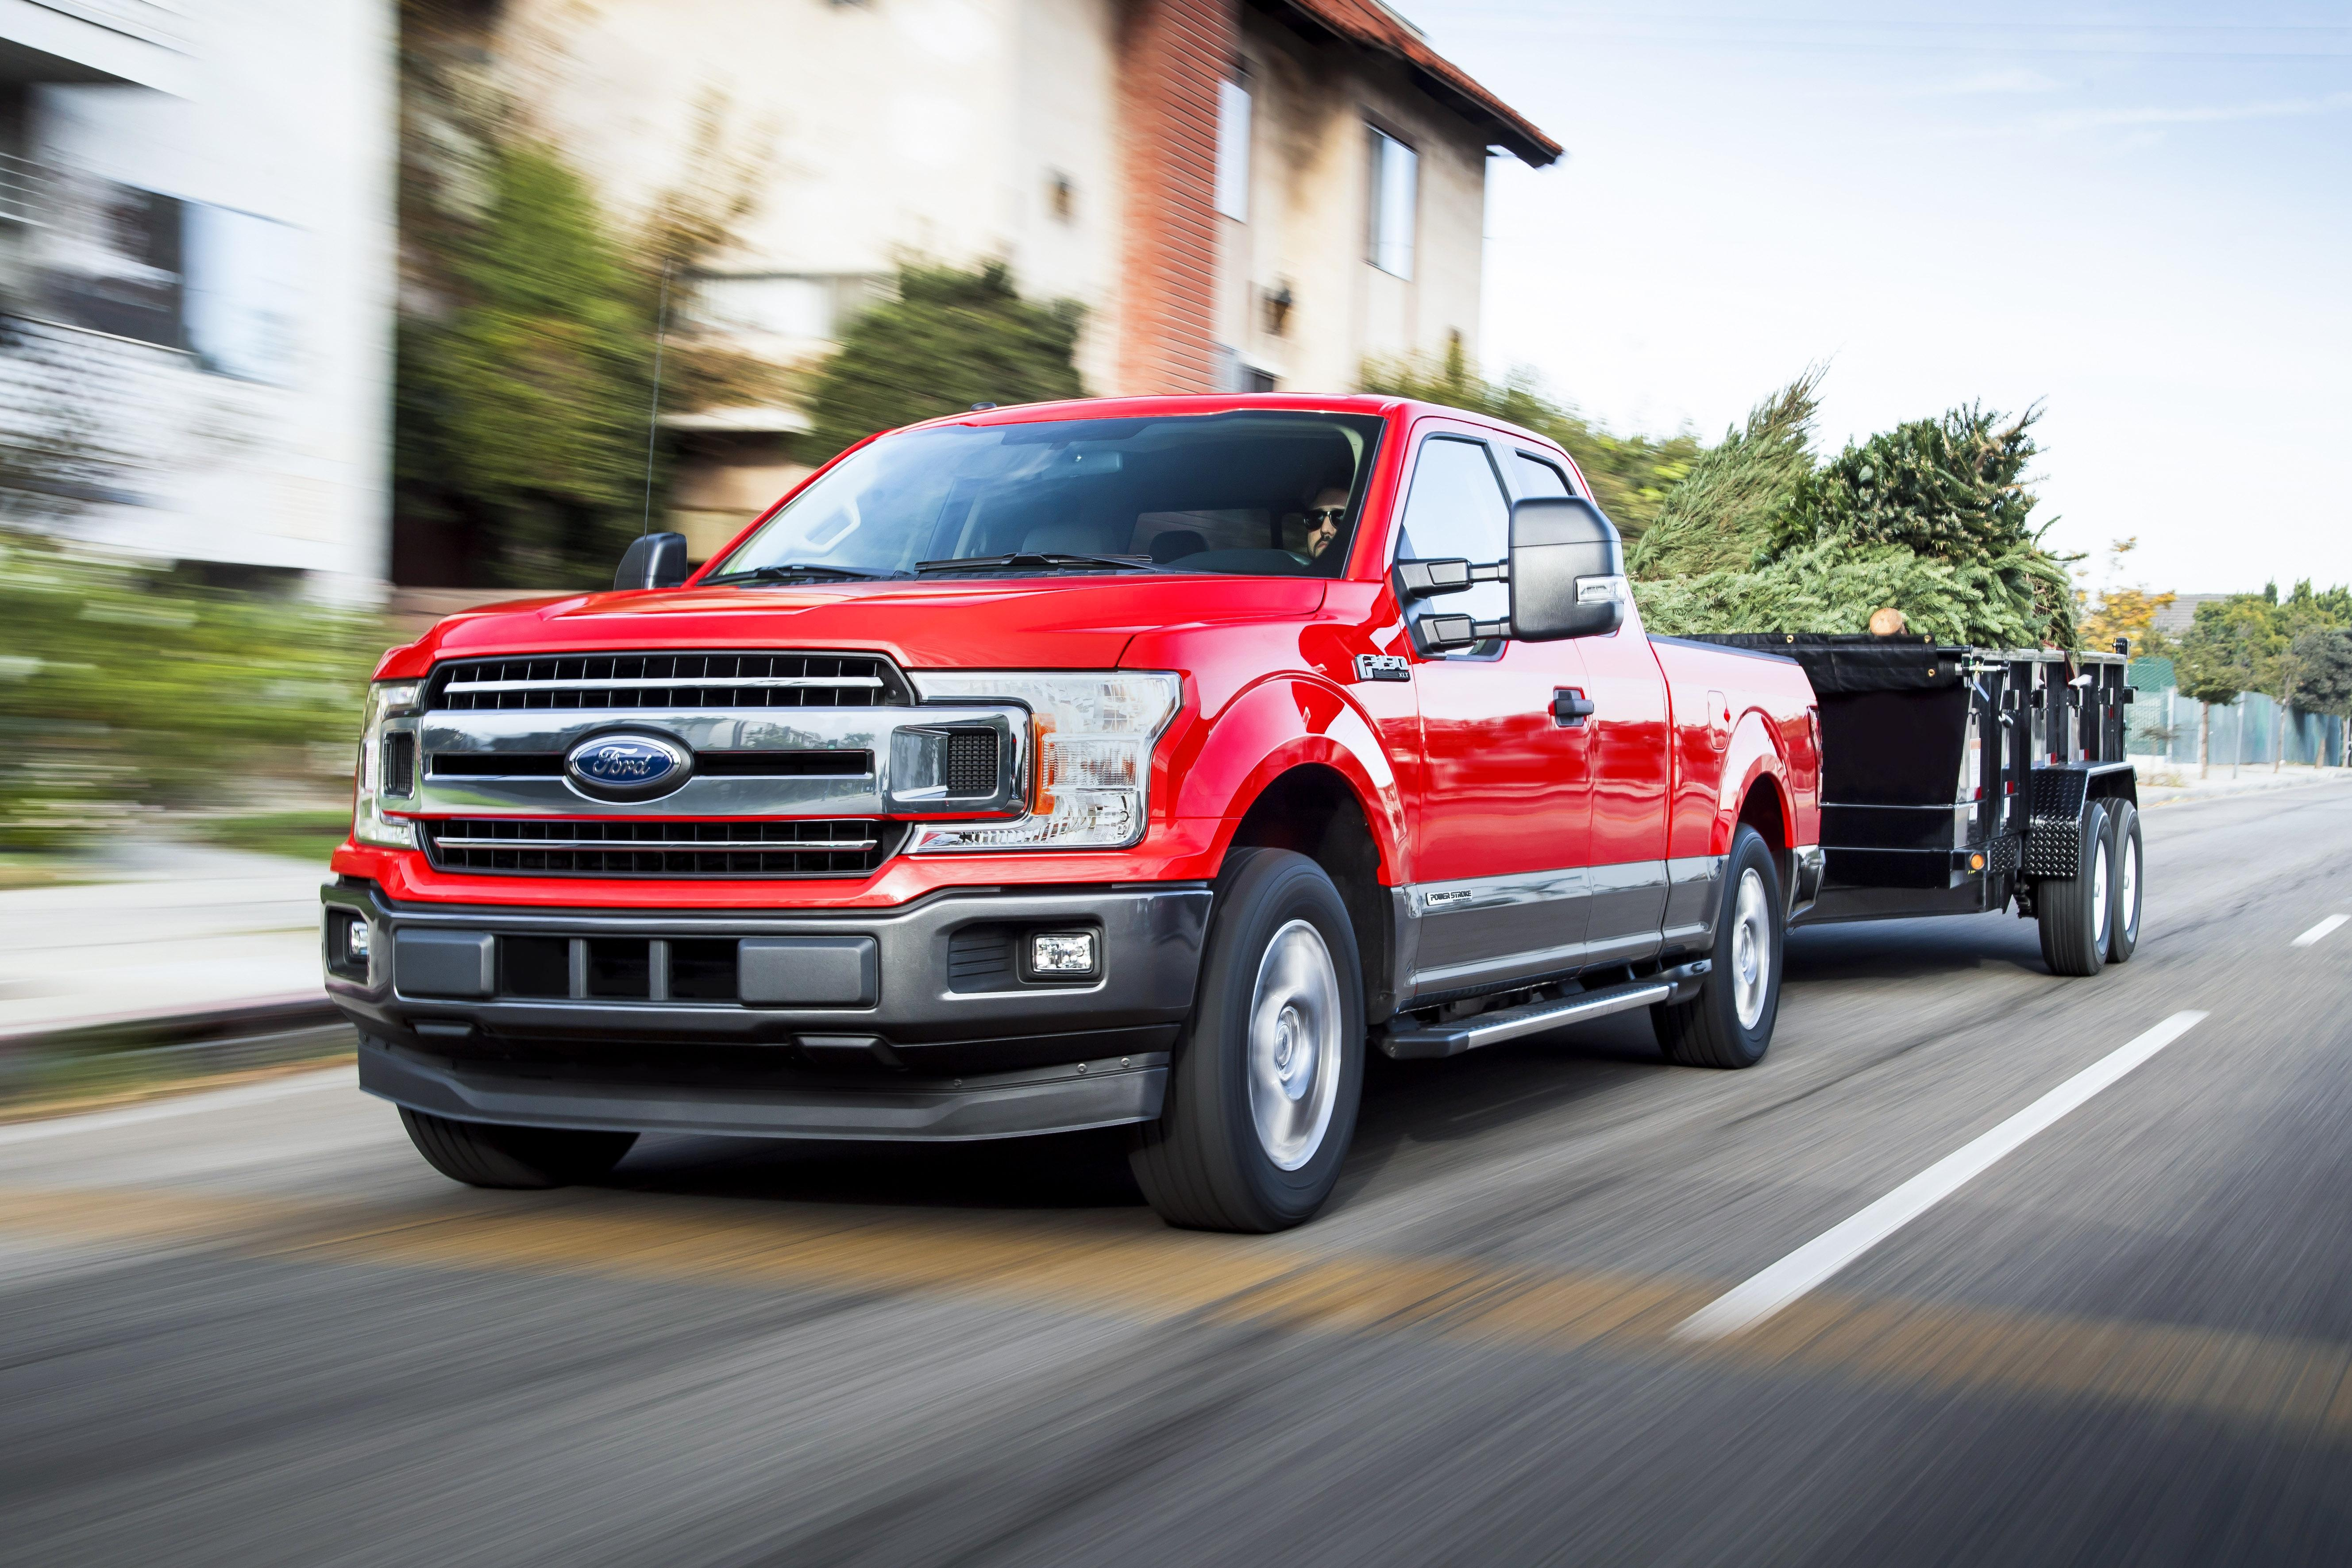 2018 F-150 Power Stroke Diesel Has Best-In-Class Fuel Economy